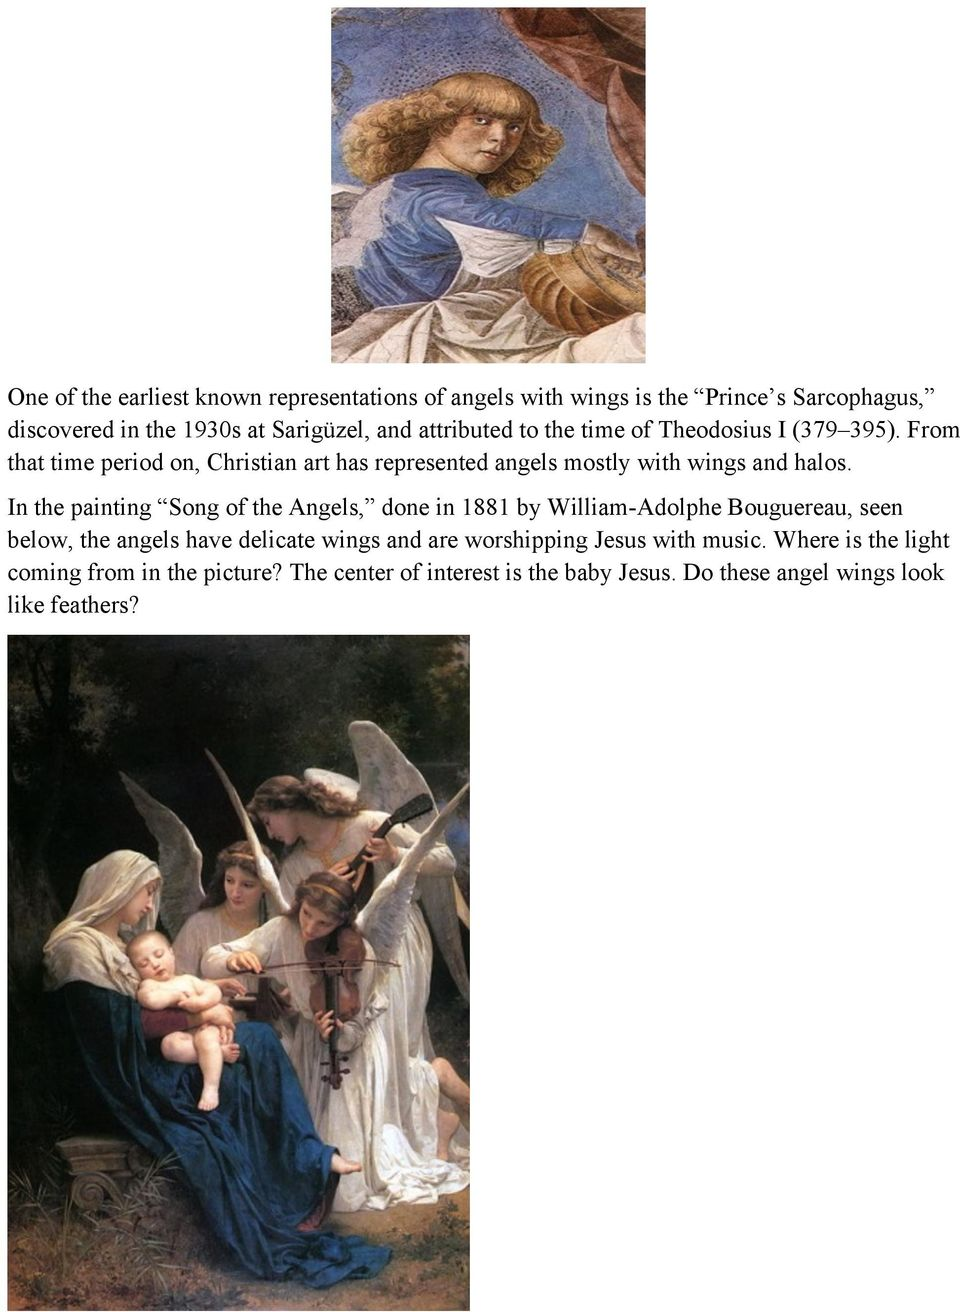 In the painting Song of the Angels, done in 1881 by William-Adolphe Bouguereau, seen below, the angels have delicate wings and are